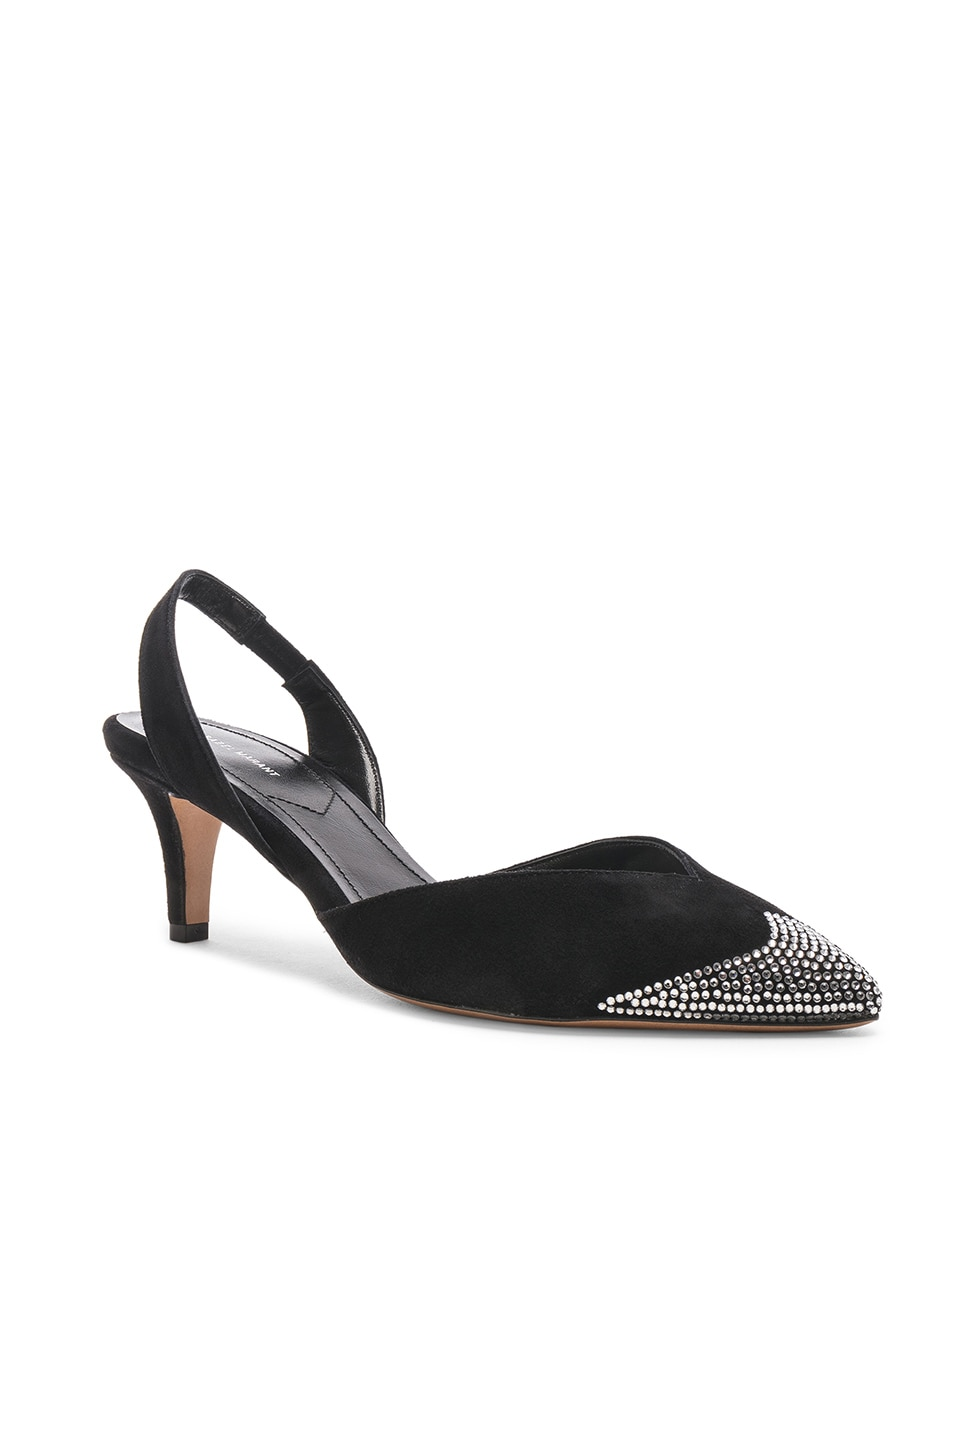 Image 2 of Isabel Marant Parkling Heel in Black